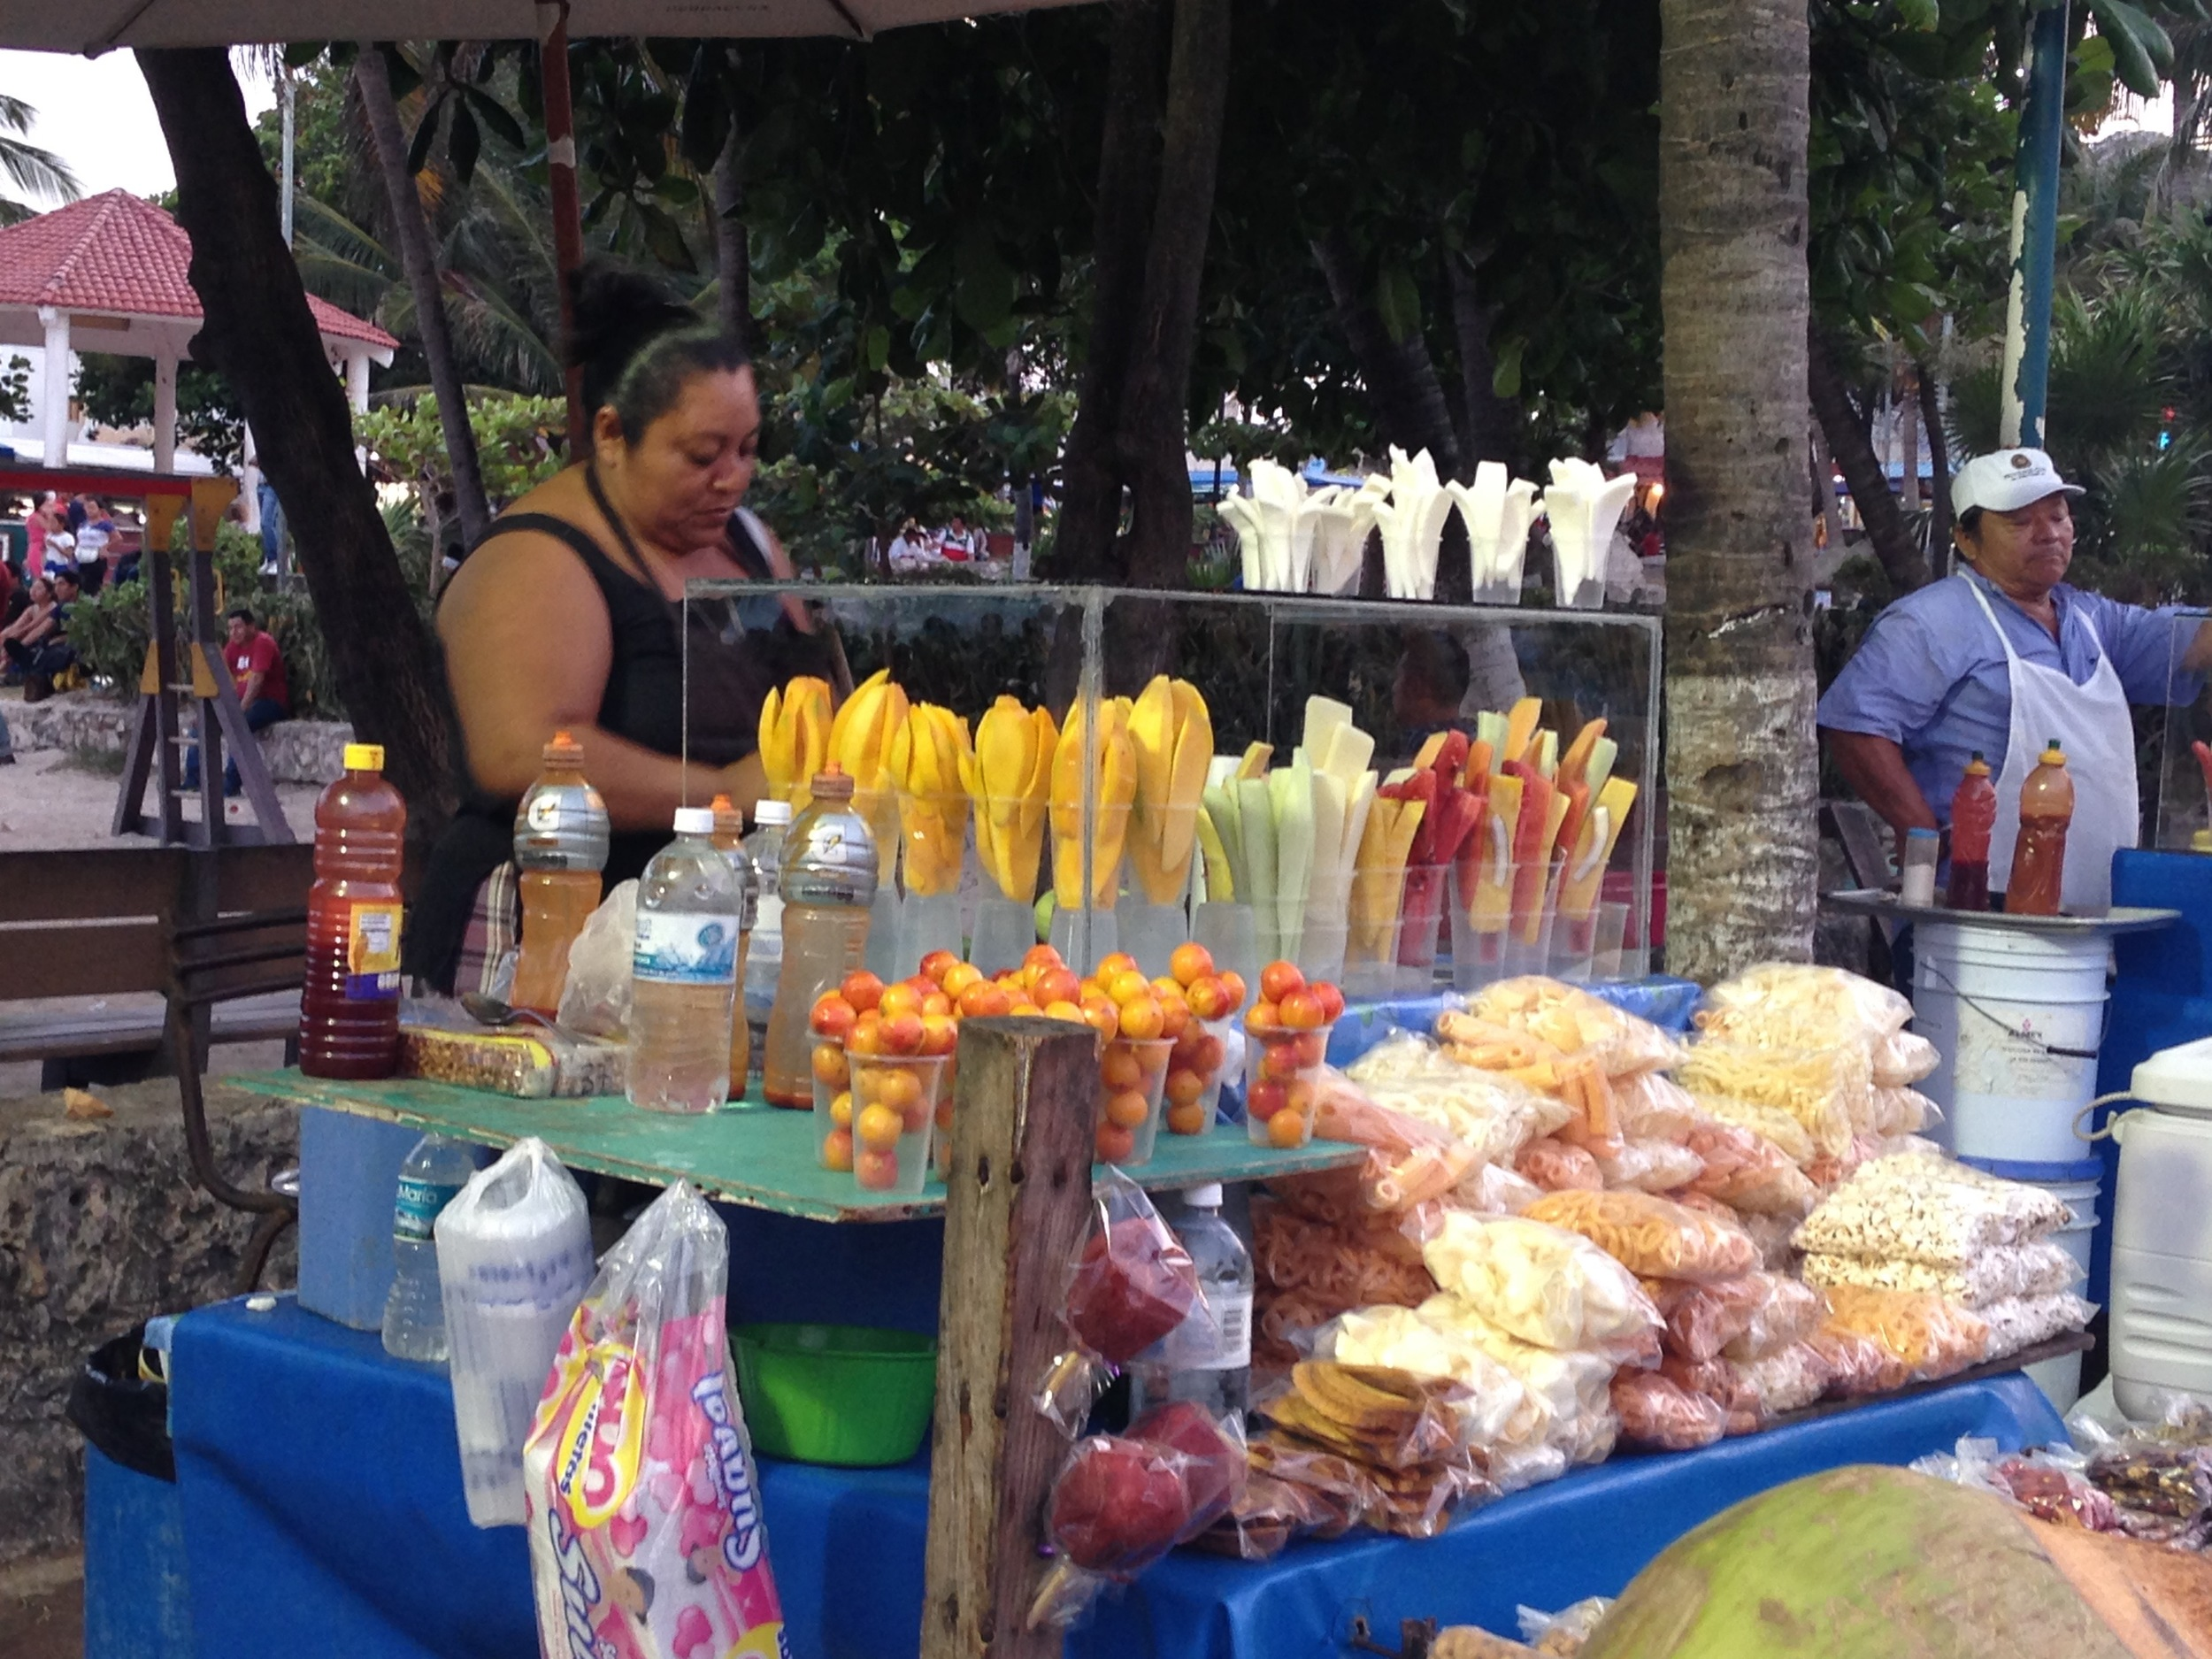 FRESH FRUIT VENDORS NEAR 5TH AVENUE ON THE BEACH